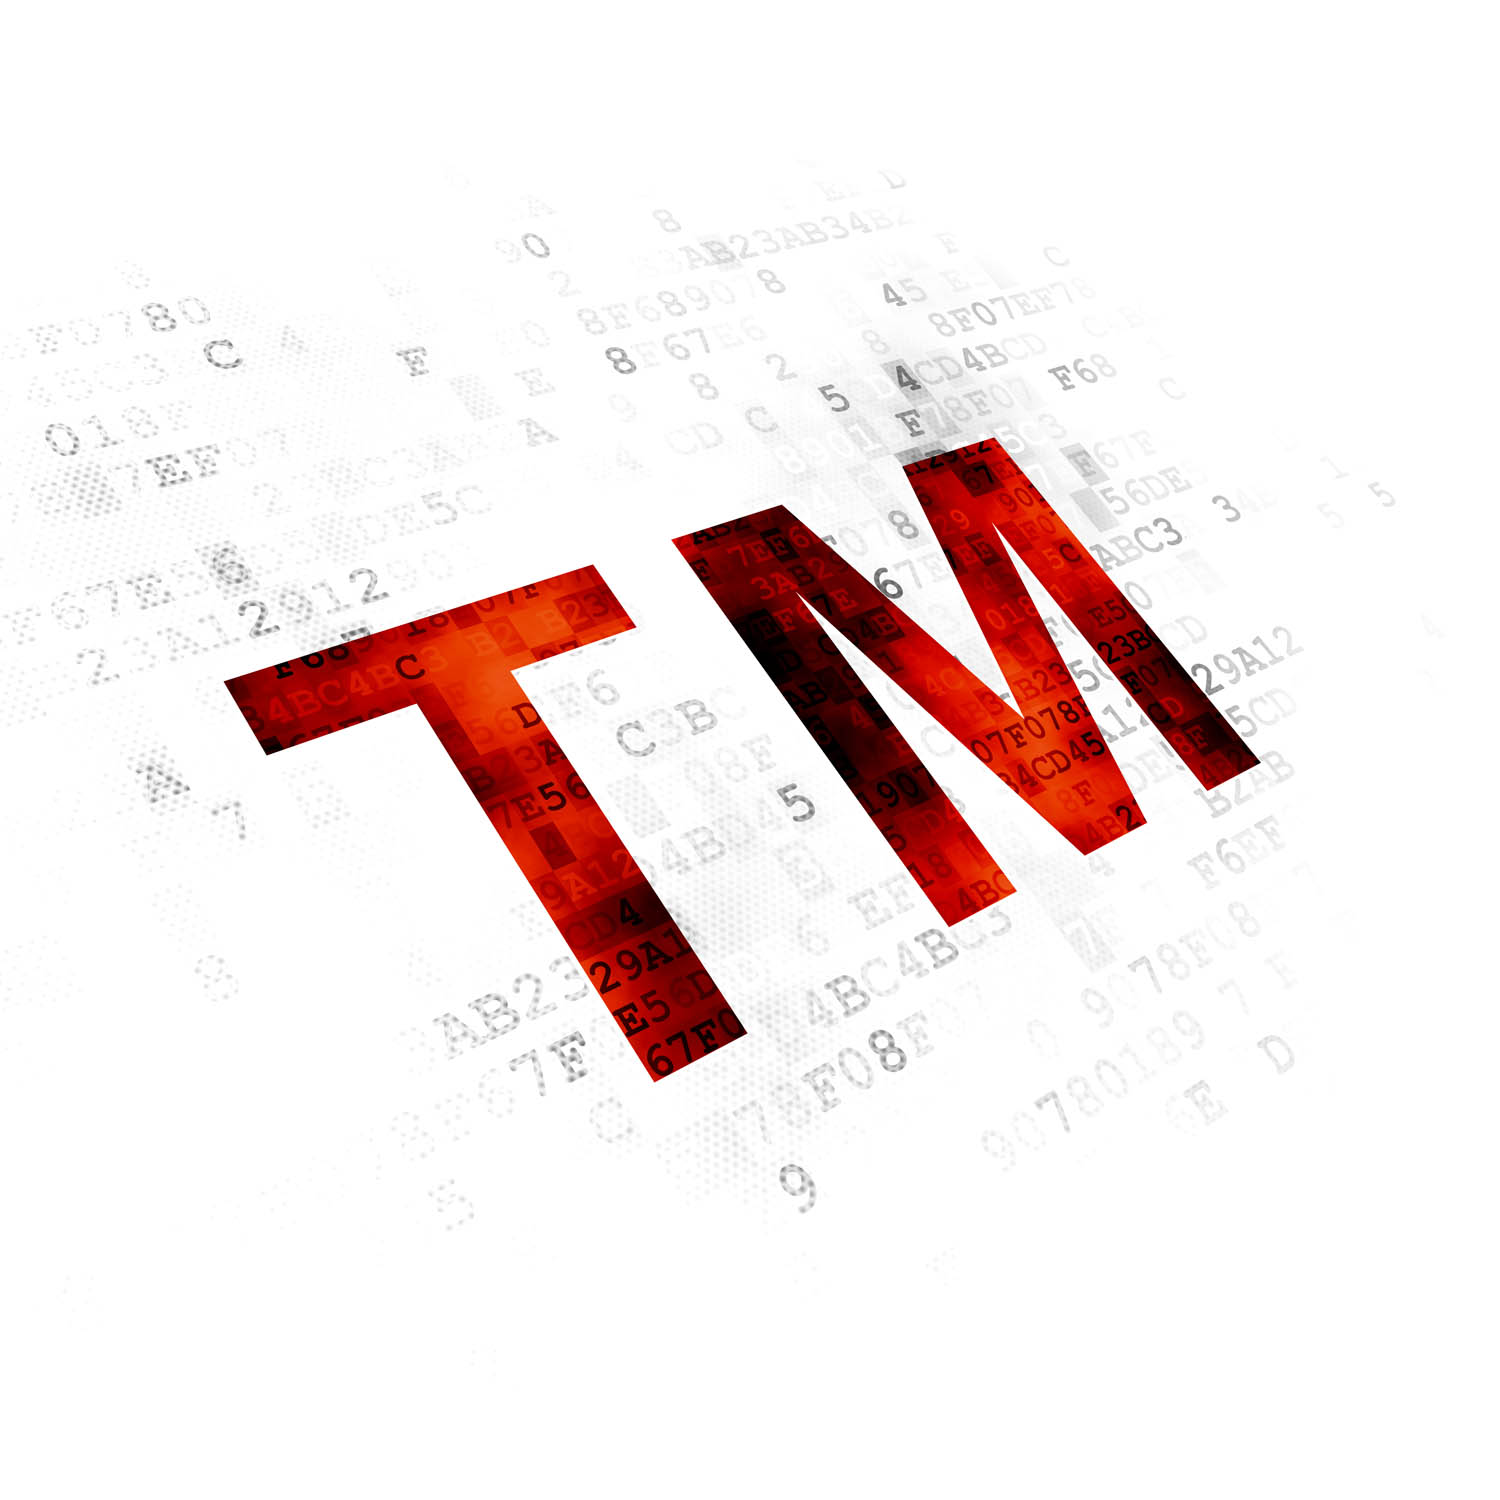 Trademark Registration: What Is an Appropriate Specimen of Use for My Product?